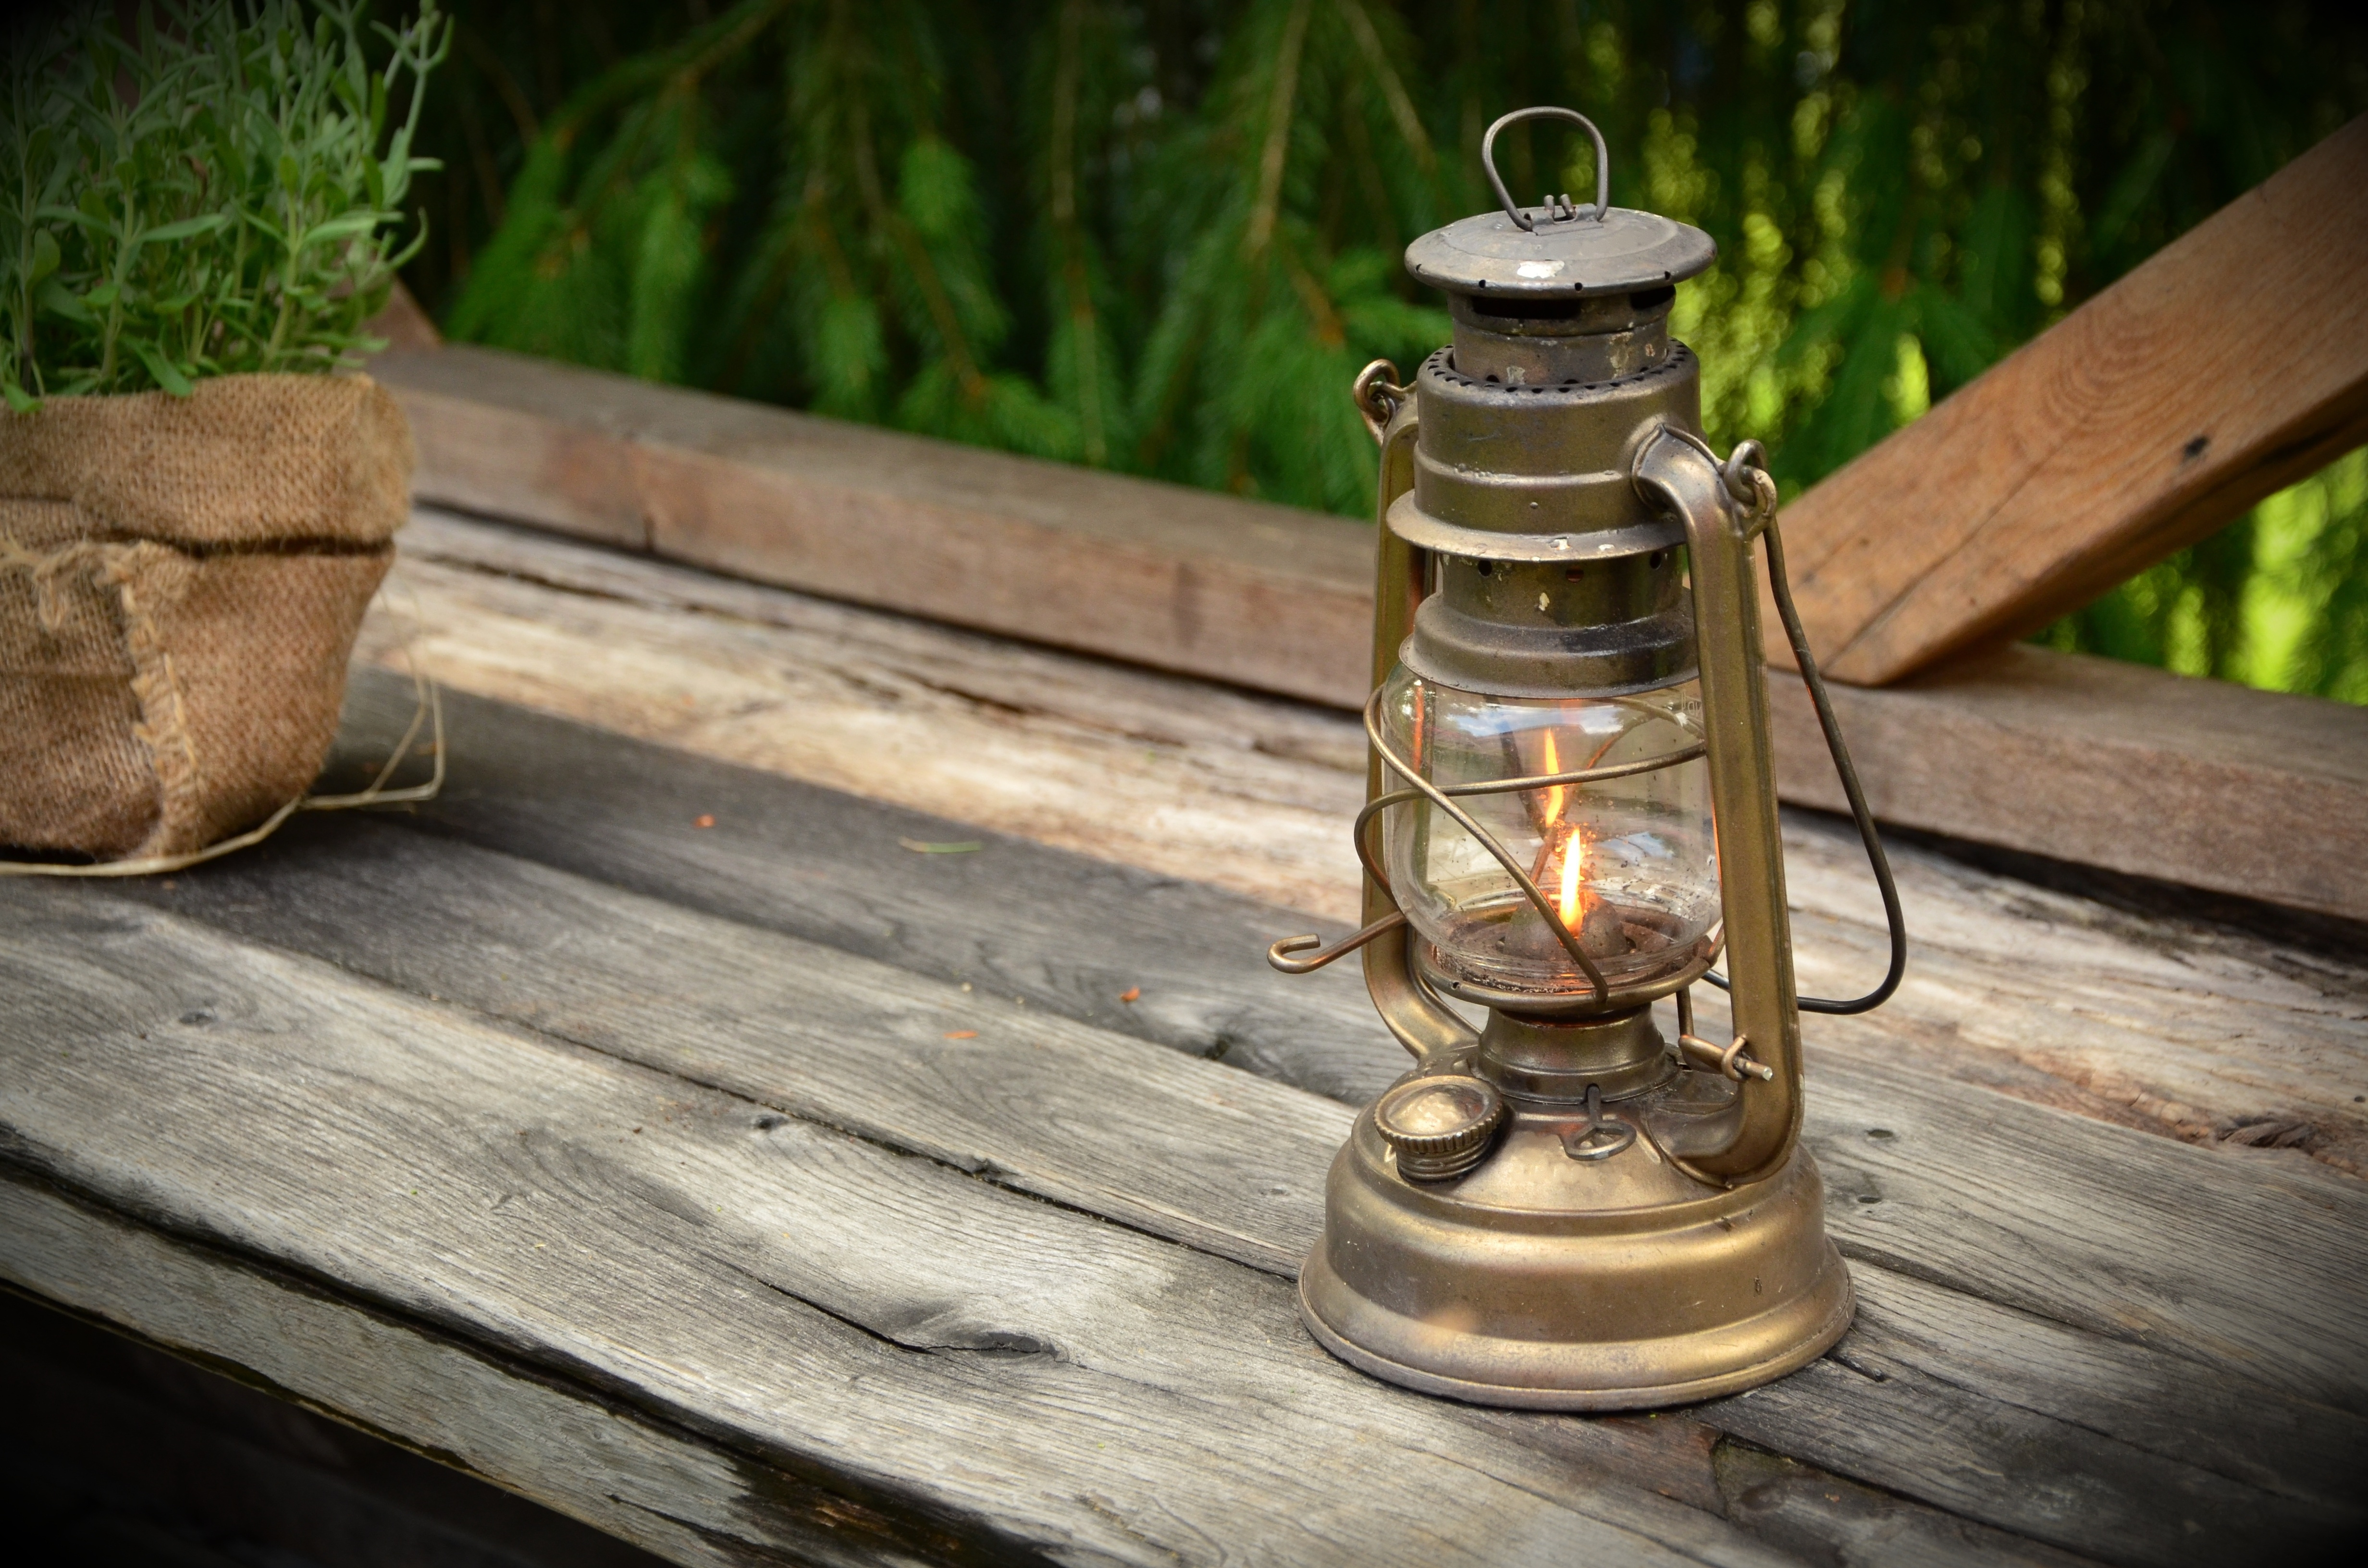 Free Images : Wood, Decoration, Lantern, Metal, Garden, Lighting inside Decorative Outdoor Kerosene Lanterns (Image 12 of 20)